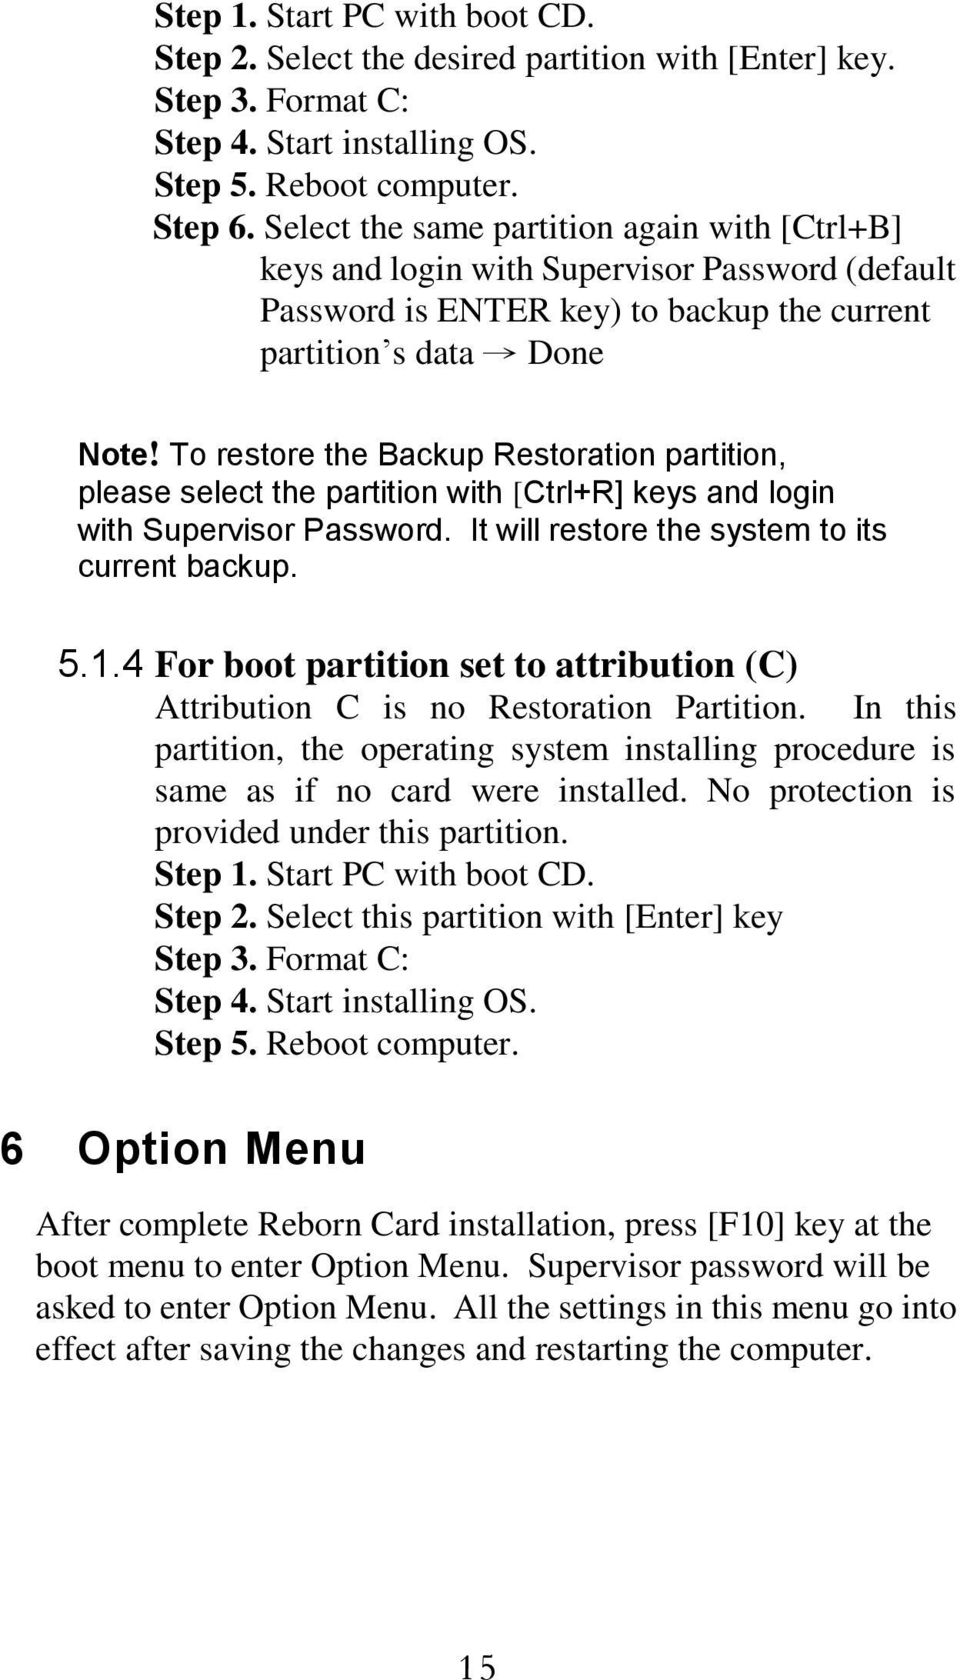 To restore the Backup Restoration partition, please select the partition with [Ctrl+R] keys and login with Supervisor Password. It will restore the system to its current backup. 5.1.